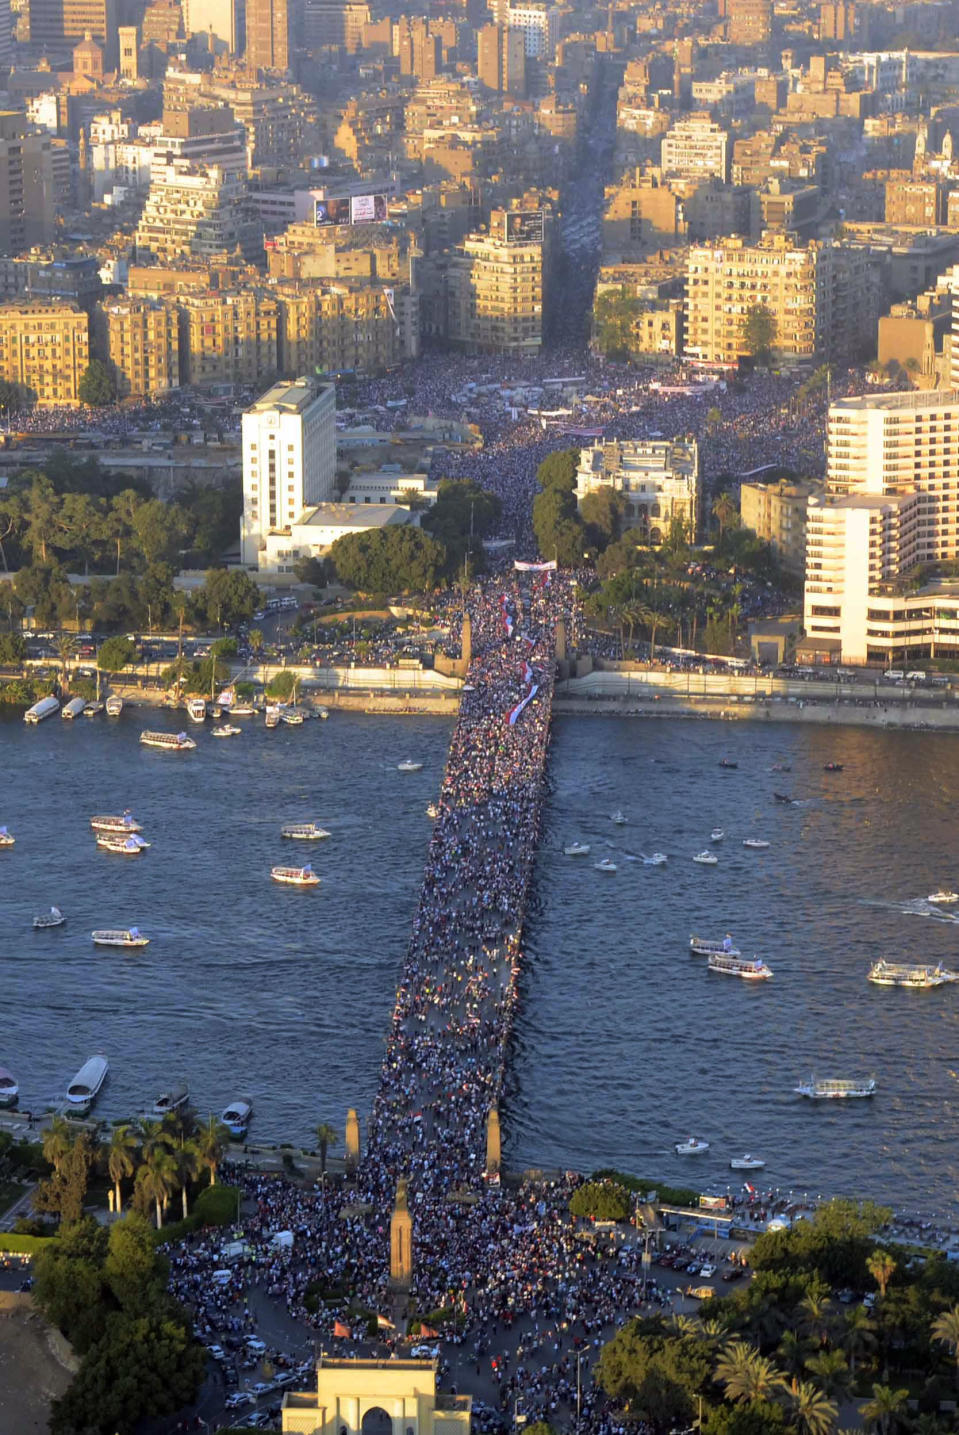 In this Friday, July 26, 2013, photo released on Saturday, July 27, by the Egyptian army, opponents of Egypt's ousted President Mohammed Morsi protest at Tahrir Square, upper part, and on a bridge over the Nile river in Cairo, Egypt. Security forces clashed with supporters of Egypt's ousted president early Saturday in the country's bloodiest incidence of violence since the military deposed Morsi. (AP Photo/Hossam Diab, Egyptian army)